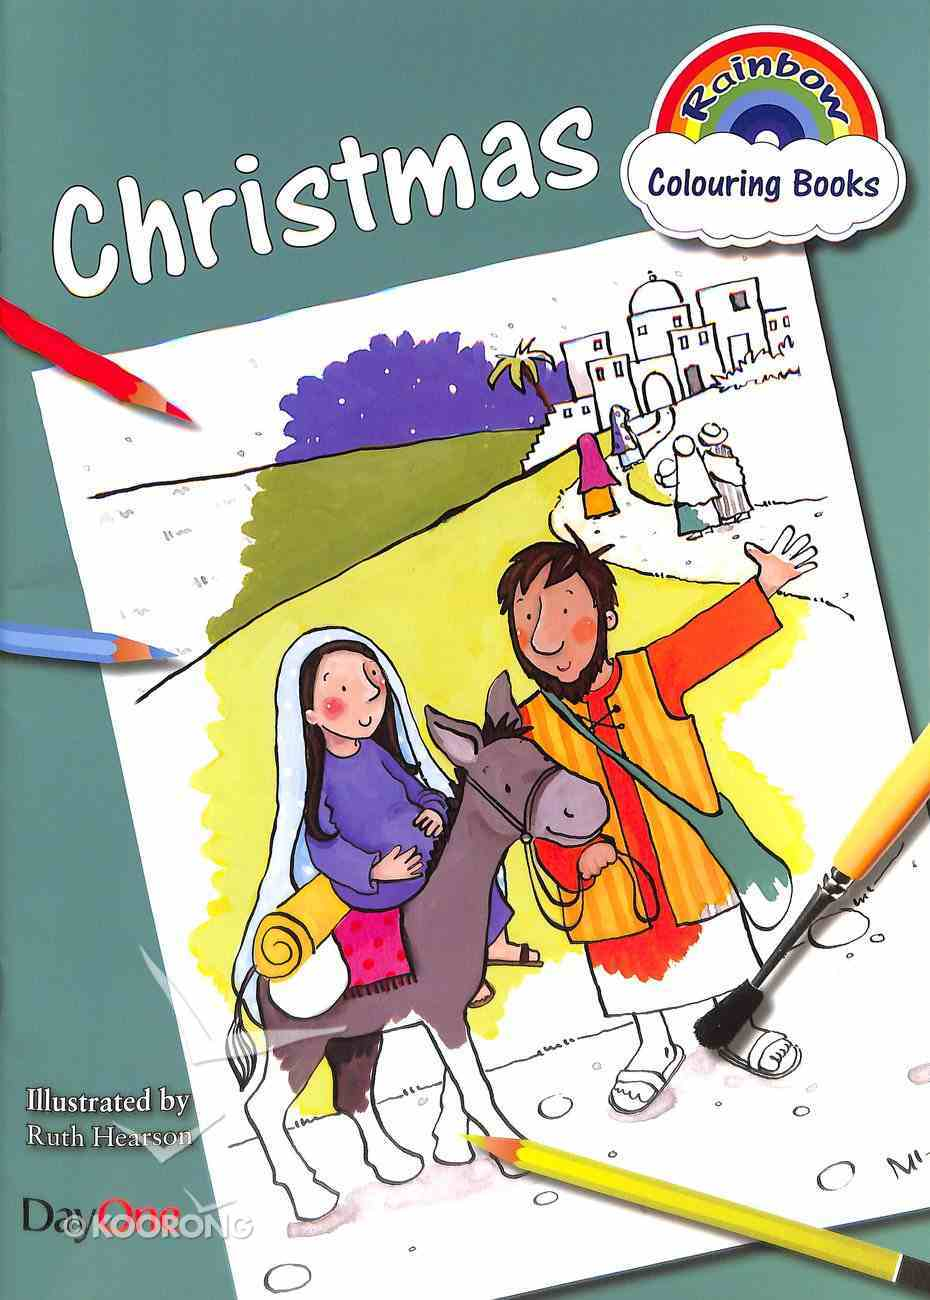 Rainbow Colouring Book: Christmas Paperback